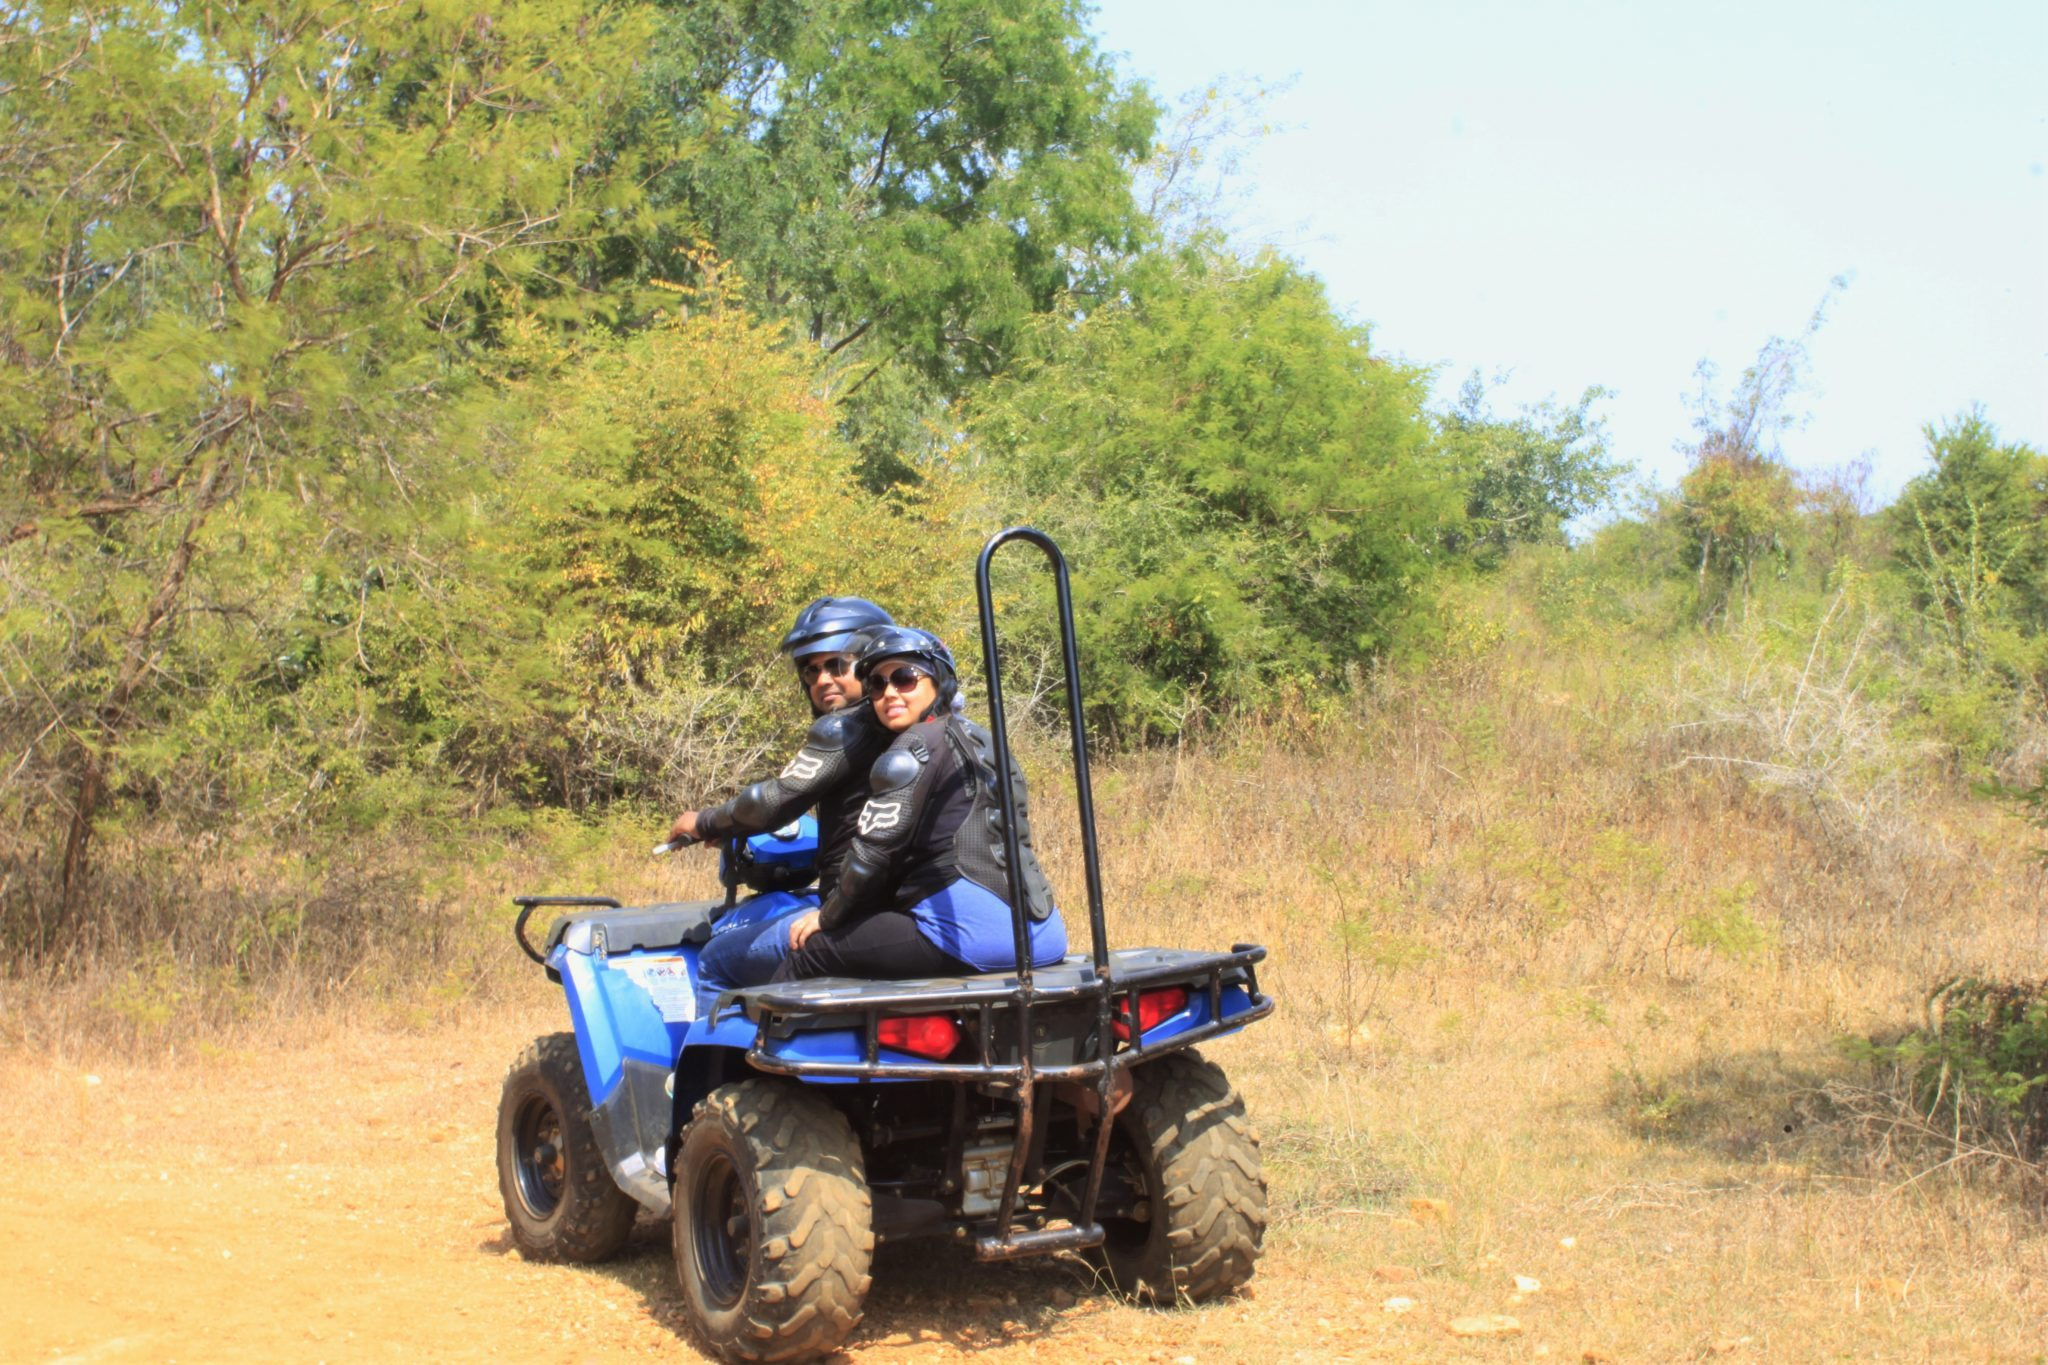 ATV Quad Bike Ride